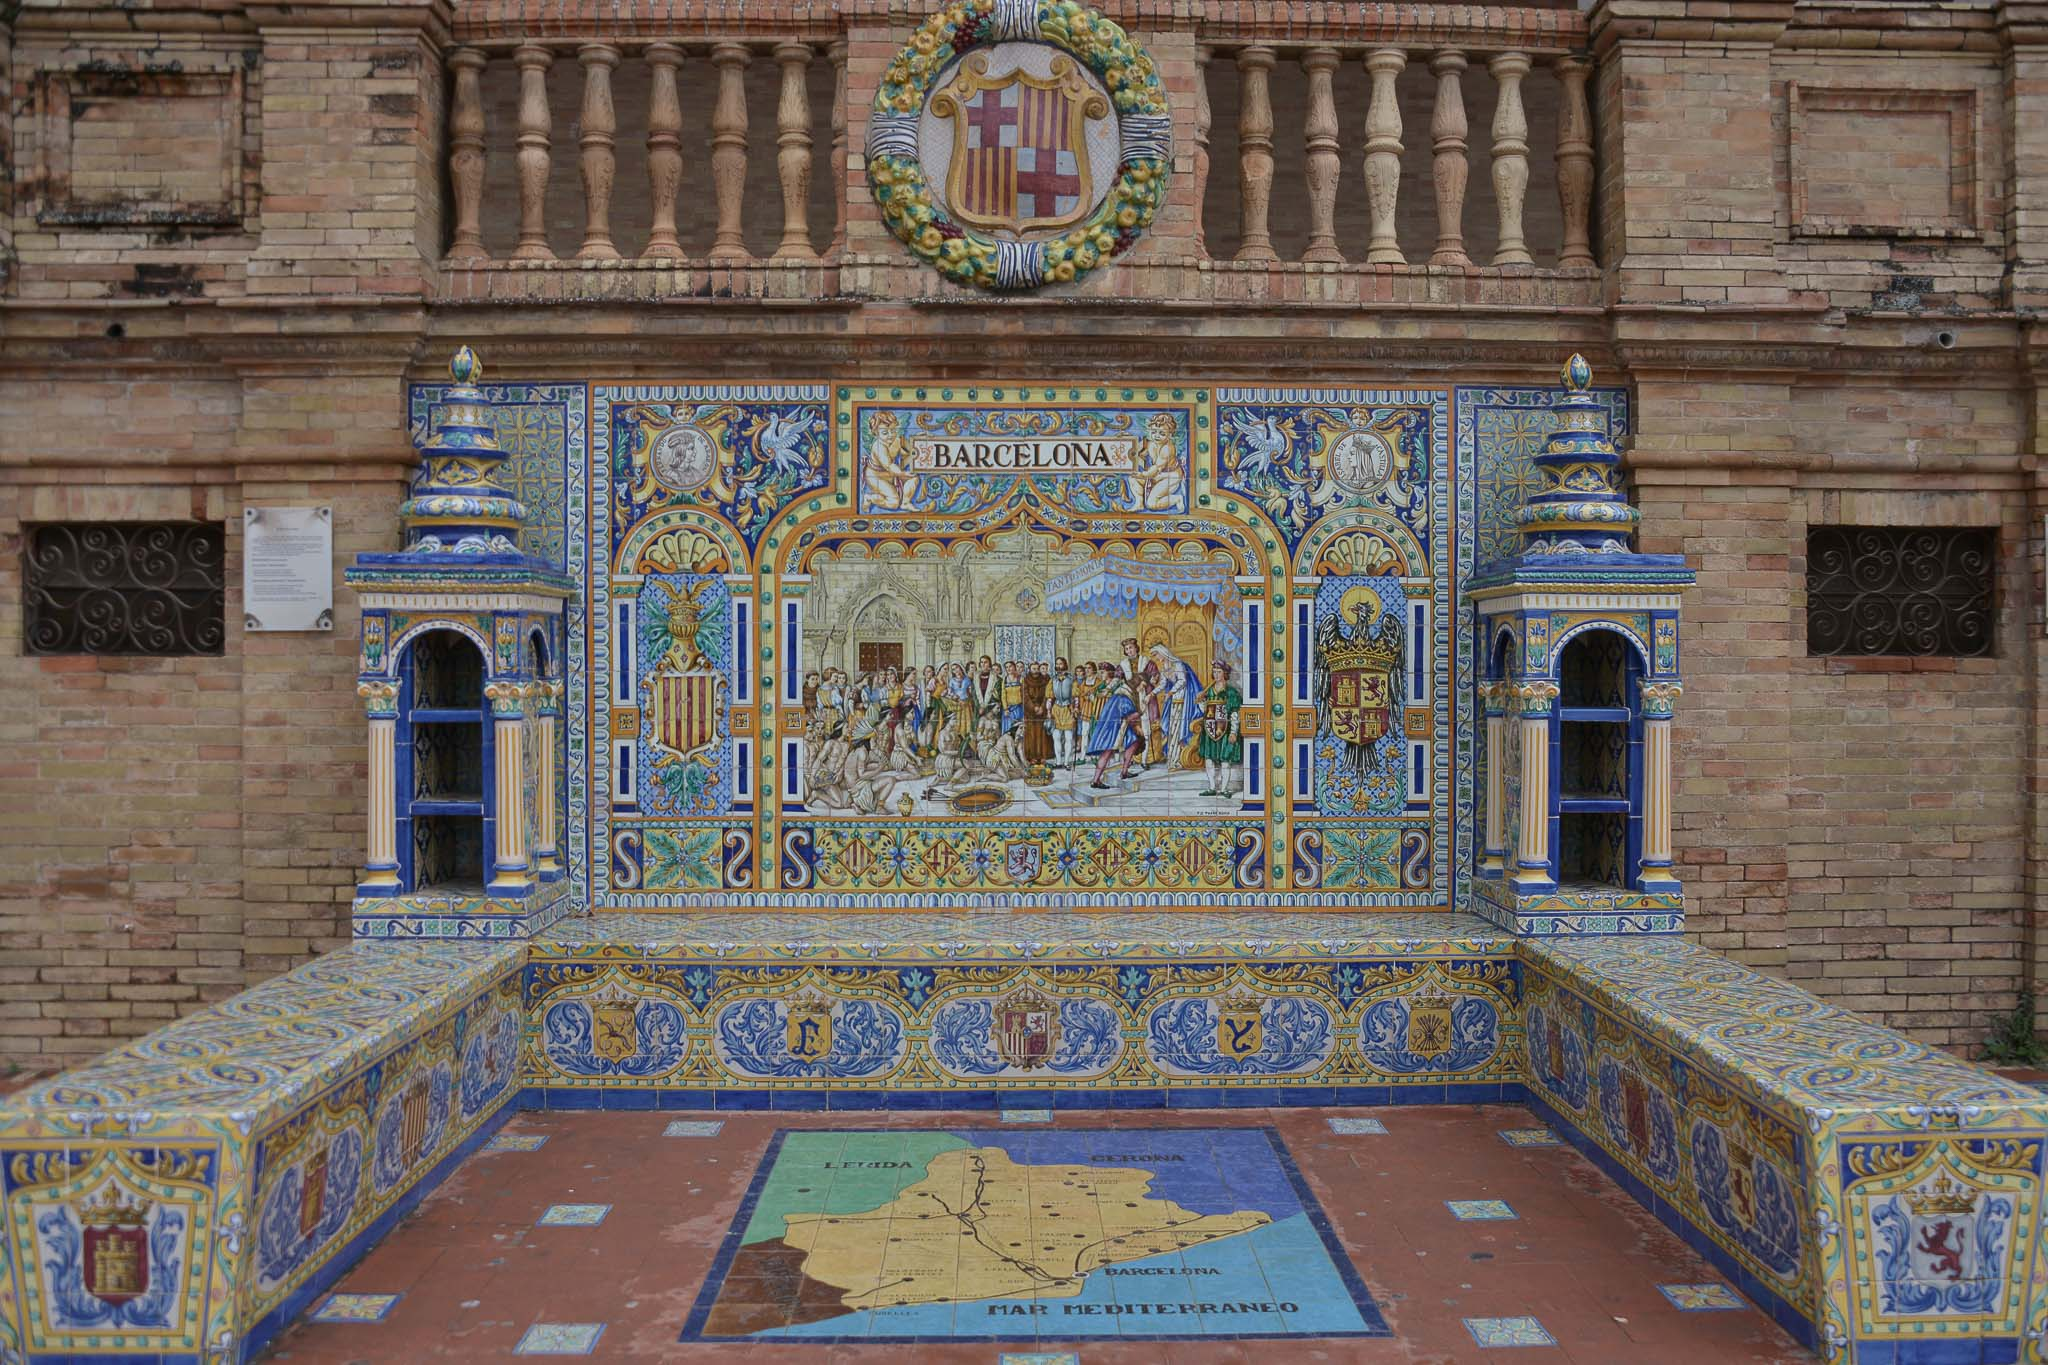 Alcoves of Spain's provinces